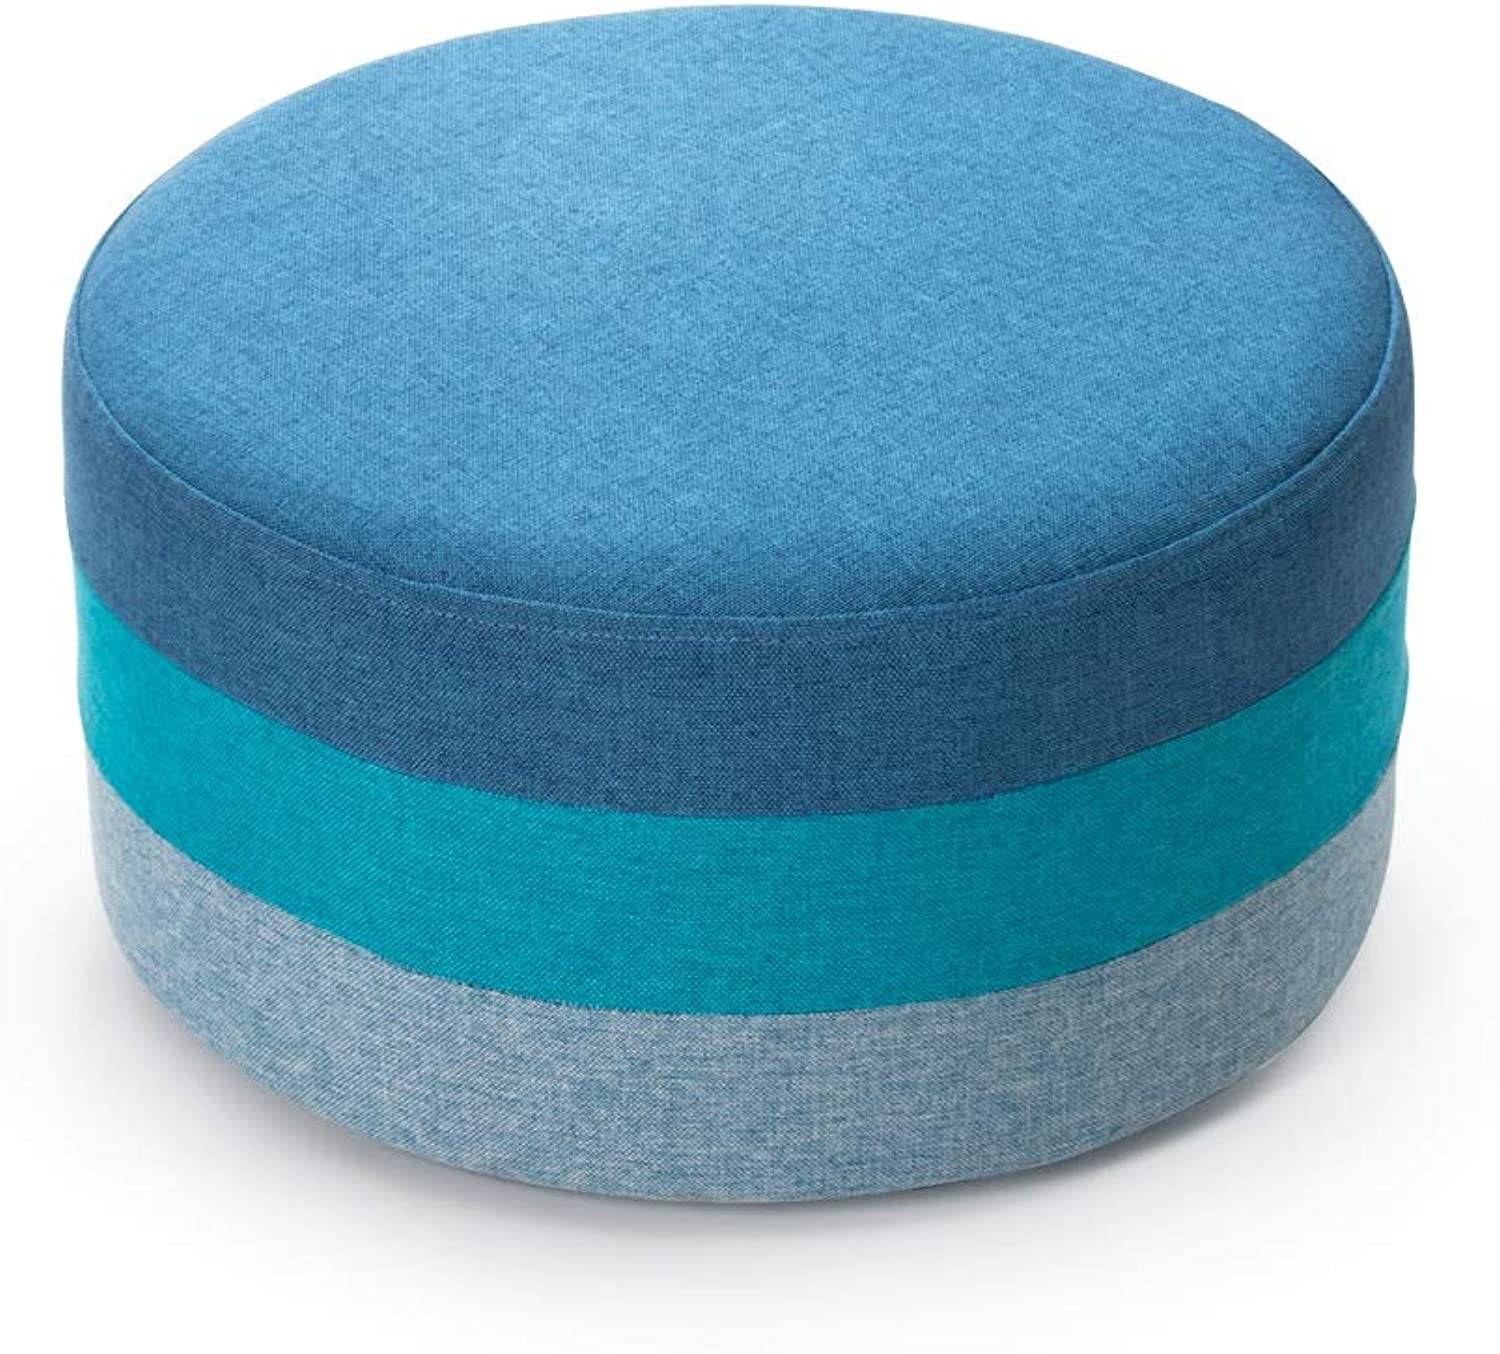 LifeX Creative Low Rainbow Sofa Stool Small Mixed colors shoes Bench Cloth Fabric Seat Pier High Elastic Sponge Footstool Washable Pudding Stool Round Bed End Stool (color   bluee)